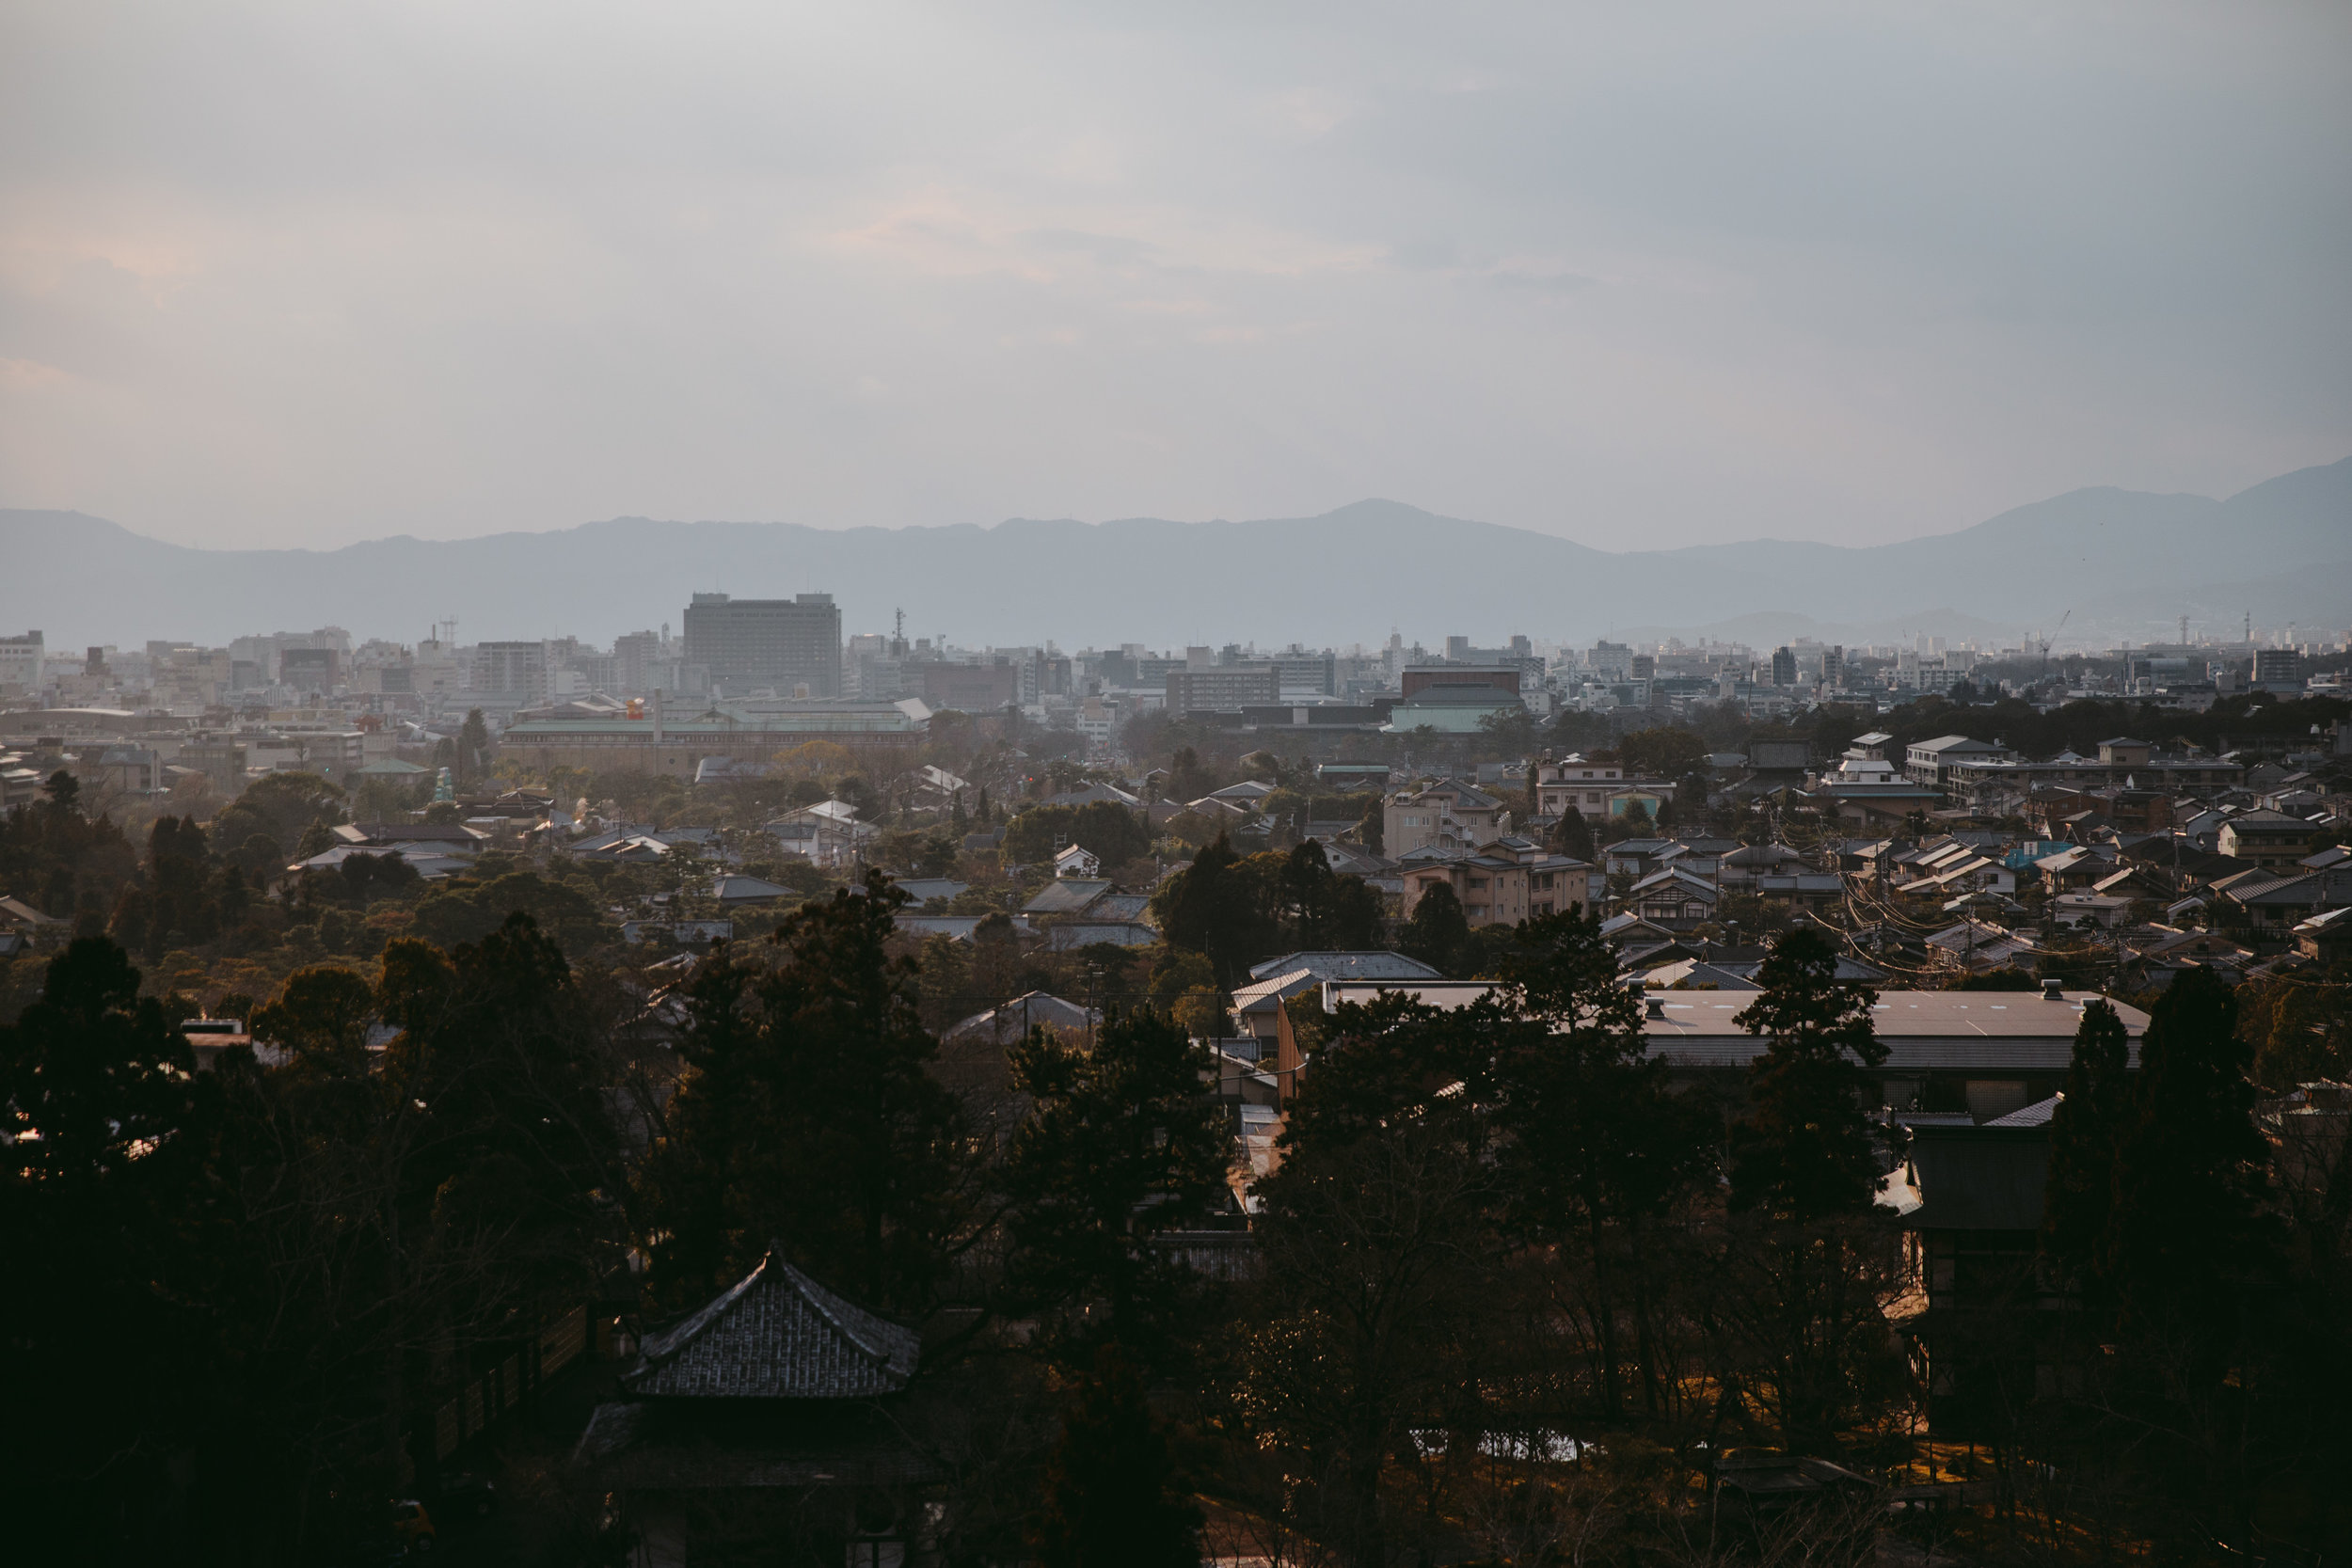 MikeSeehagel-commercial-lifestyle-travel-photography-Japan-97.jpg